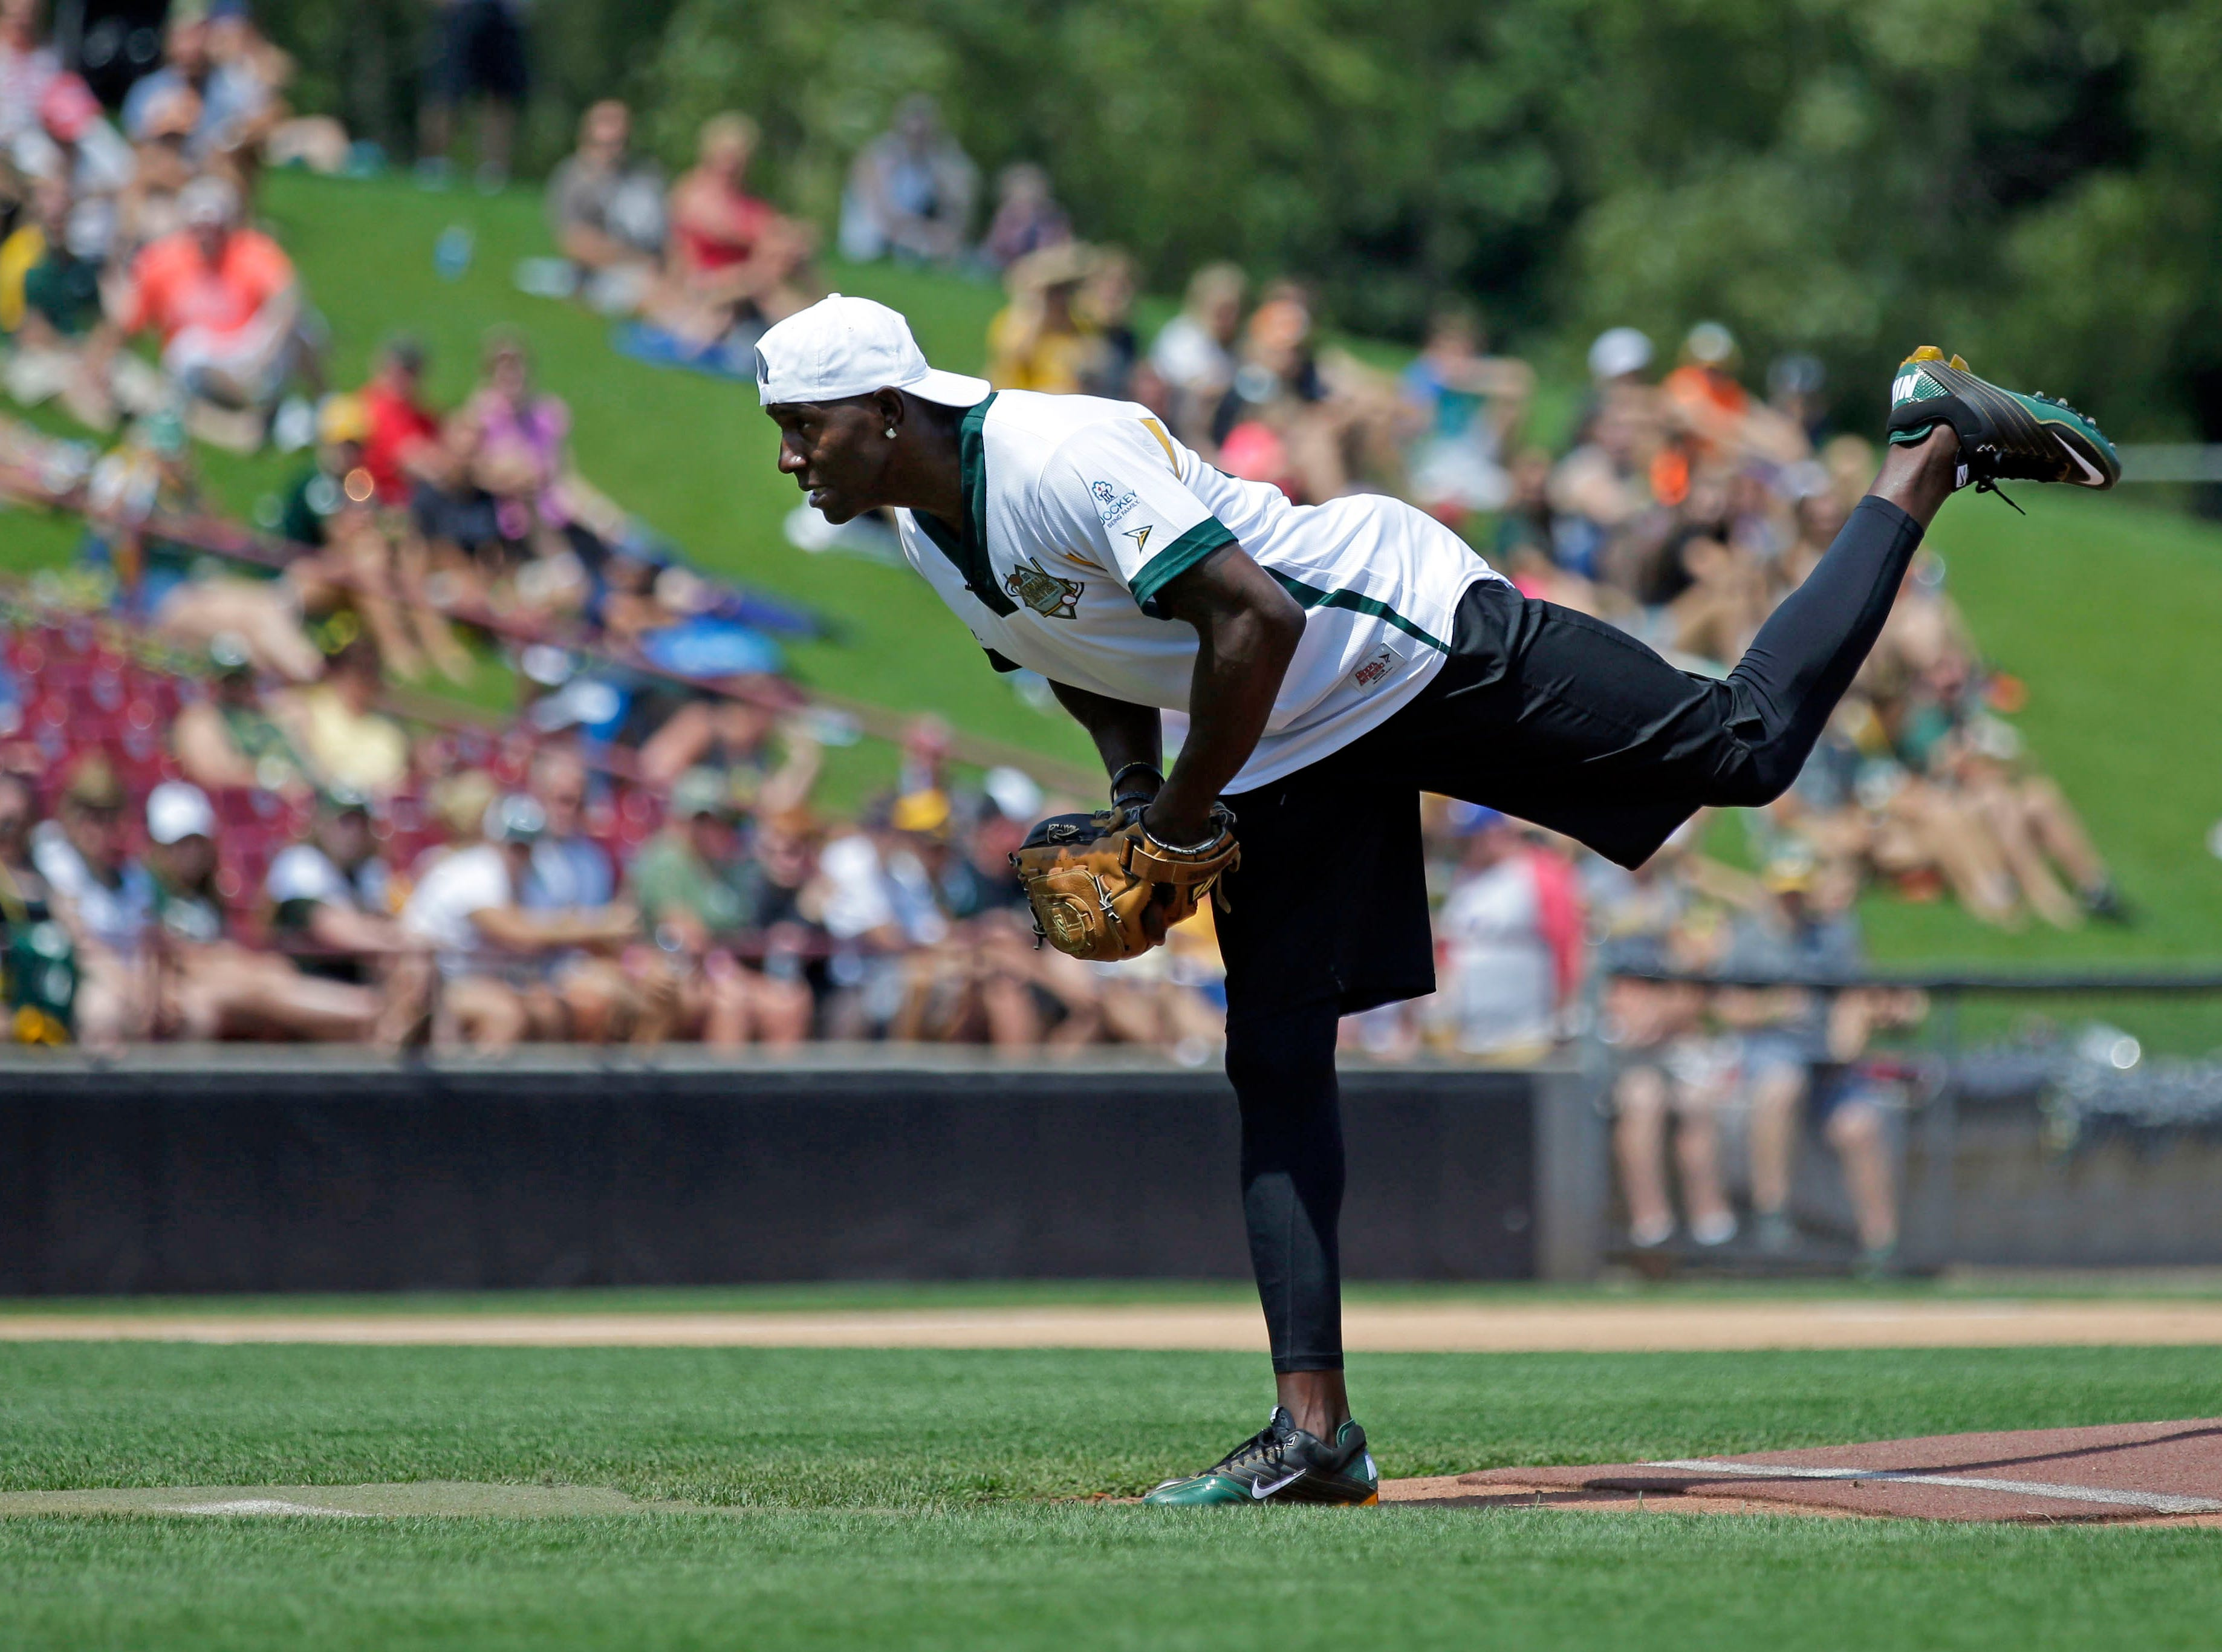 Donald Driver shows his pitching form as a few of his friends gather for a charity softball game Sunday, August 5, 2018, at Neuroscience Group Field at Fox Cities Stadium in Grand Chute, Wis.